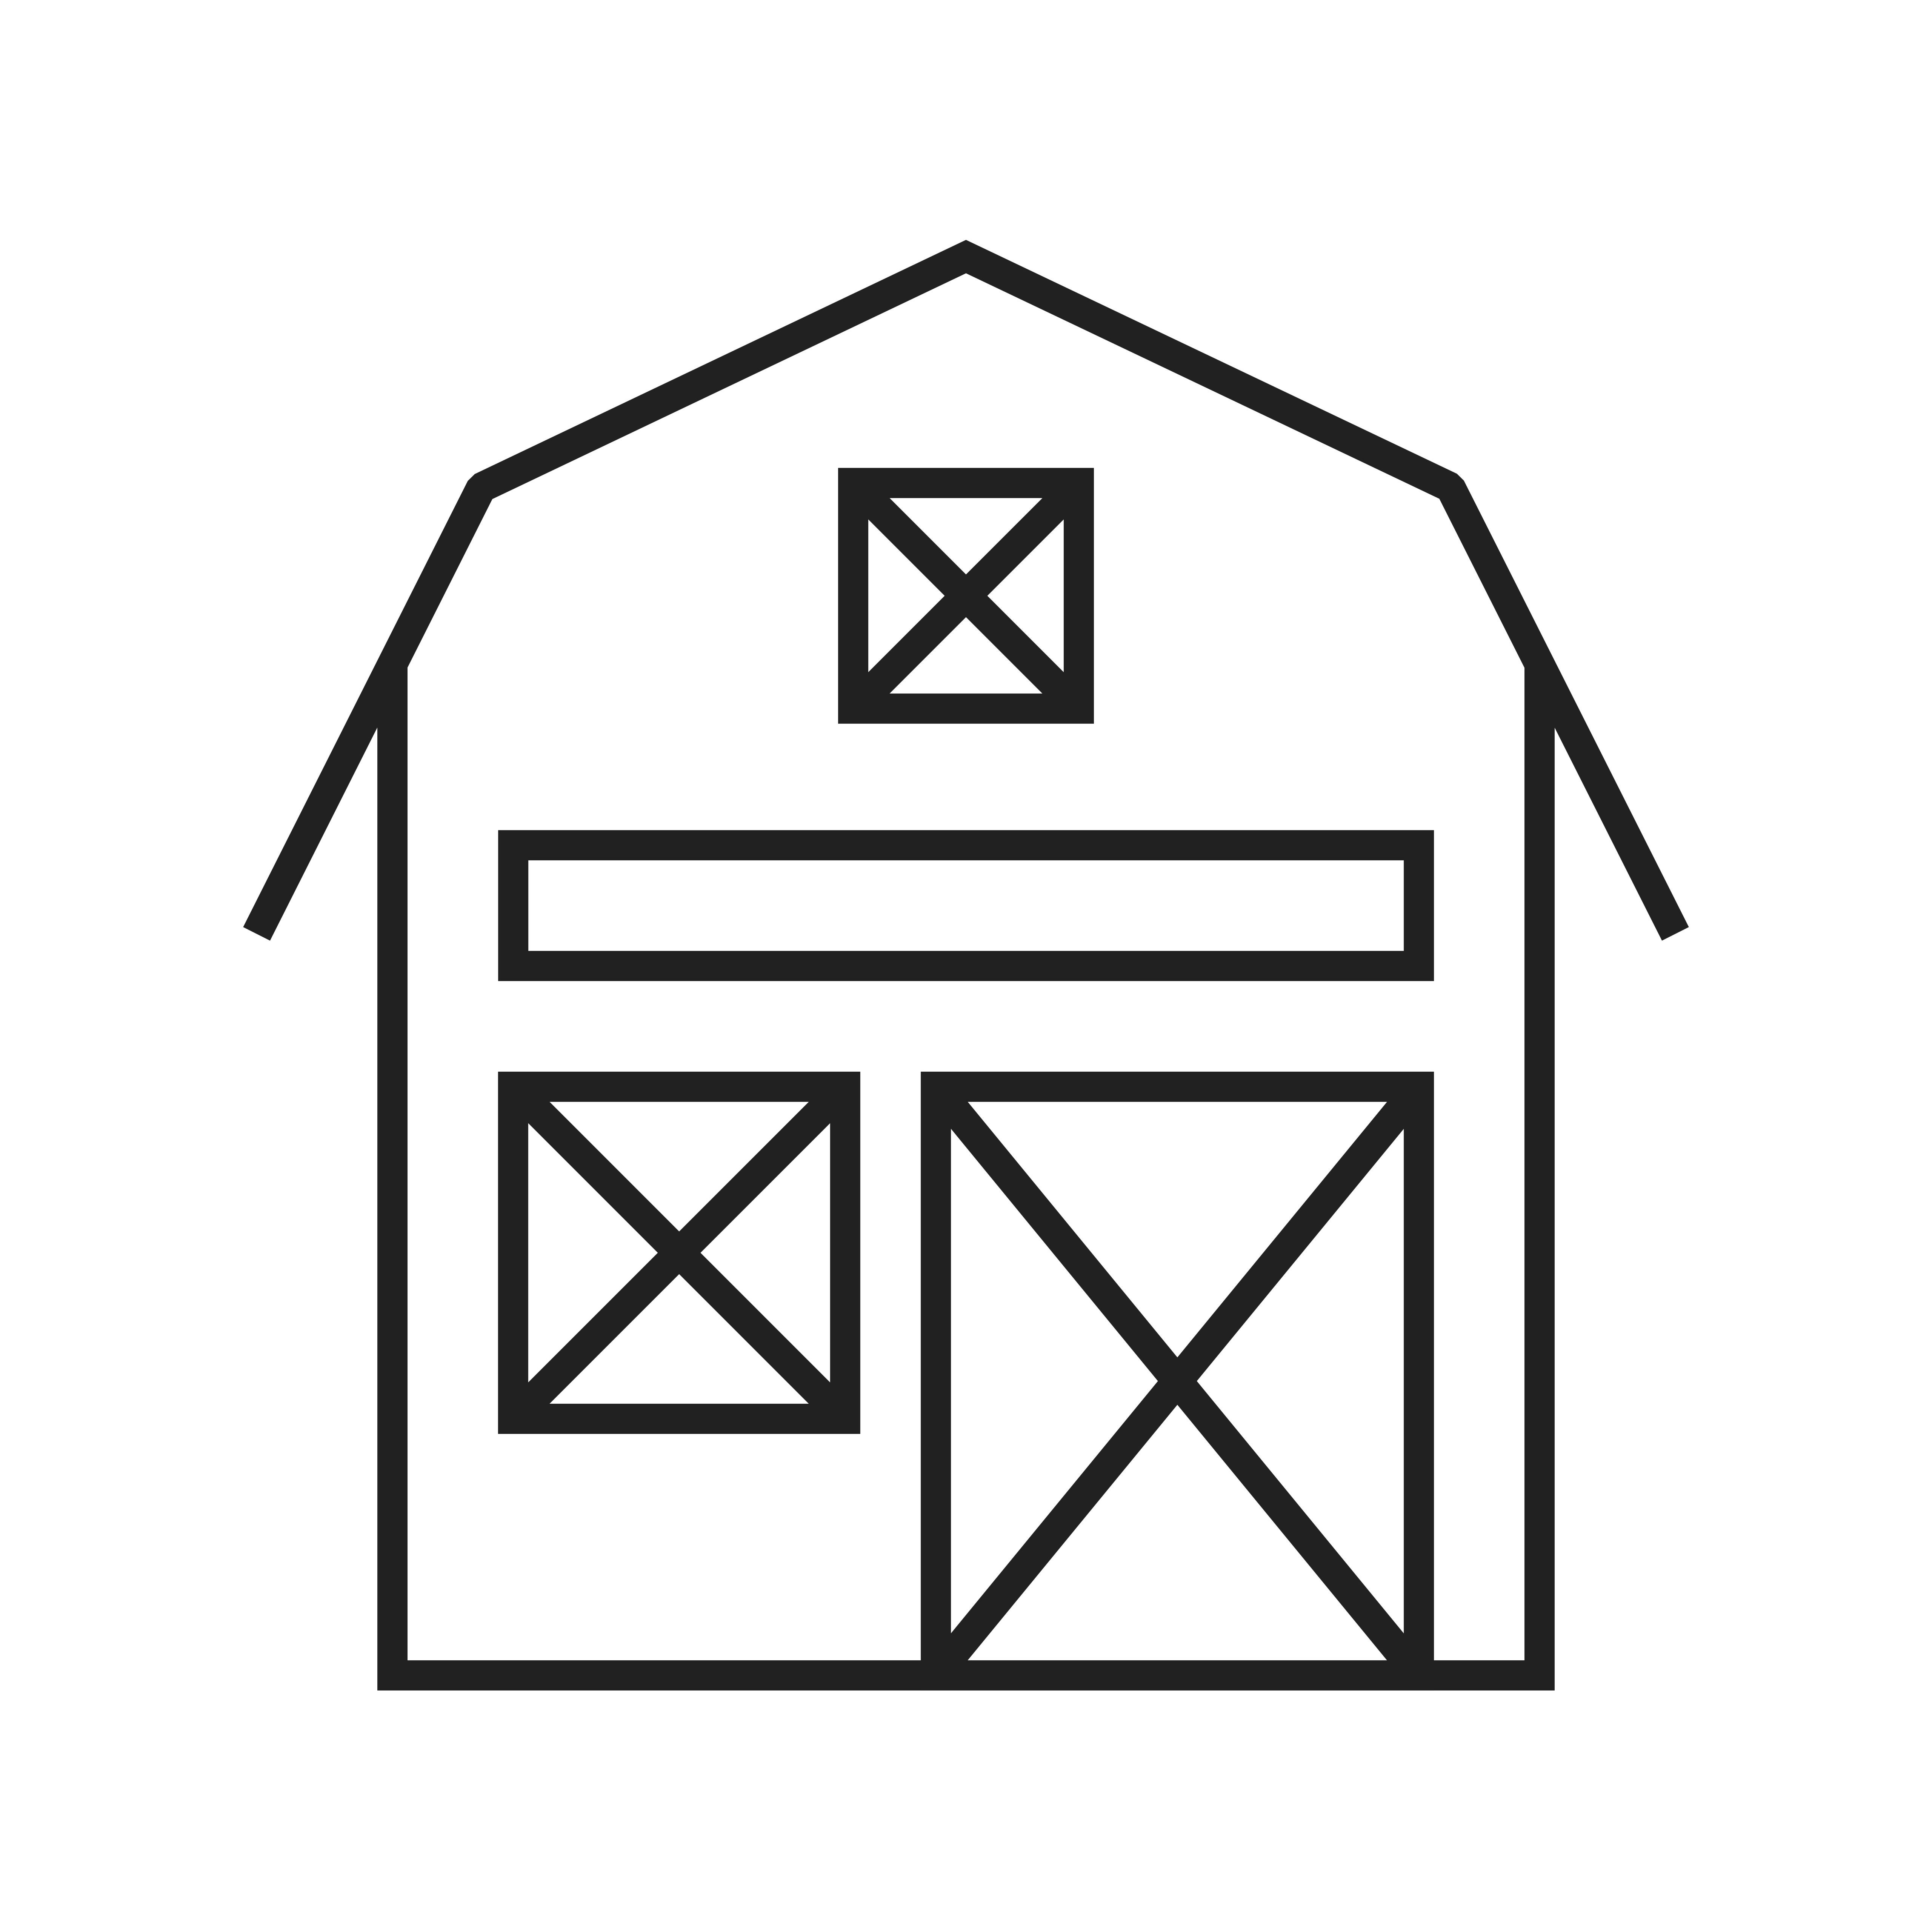 Barn Clipart Black And White In 2021 Clipart Black And White Clip Art Farm Shed